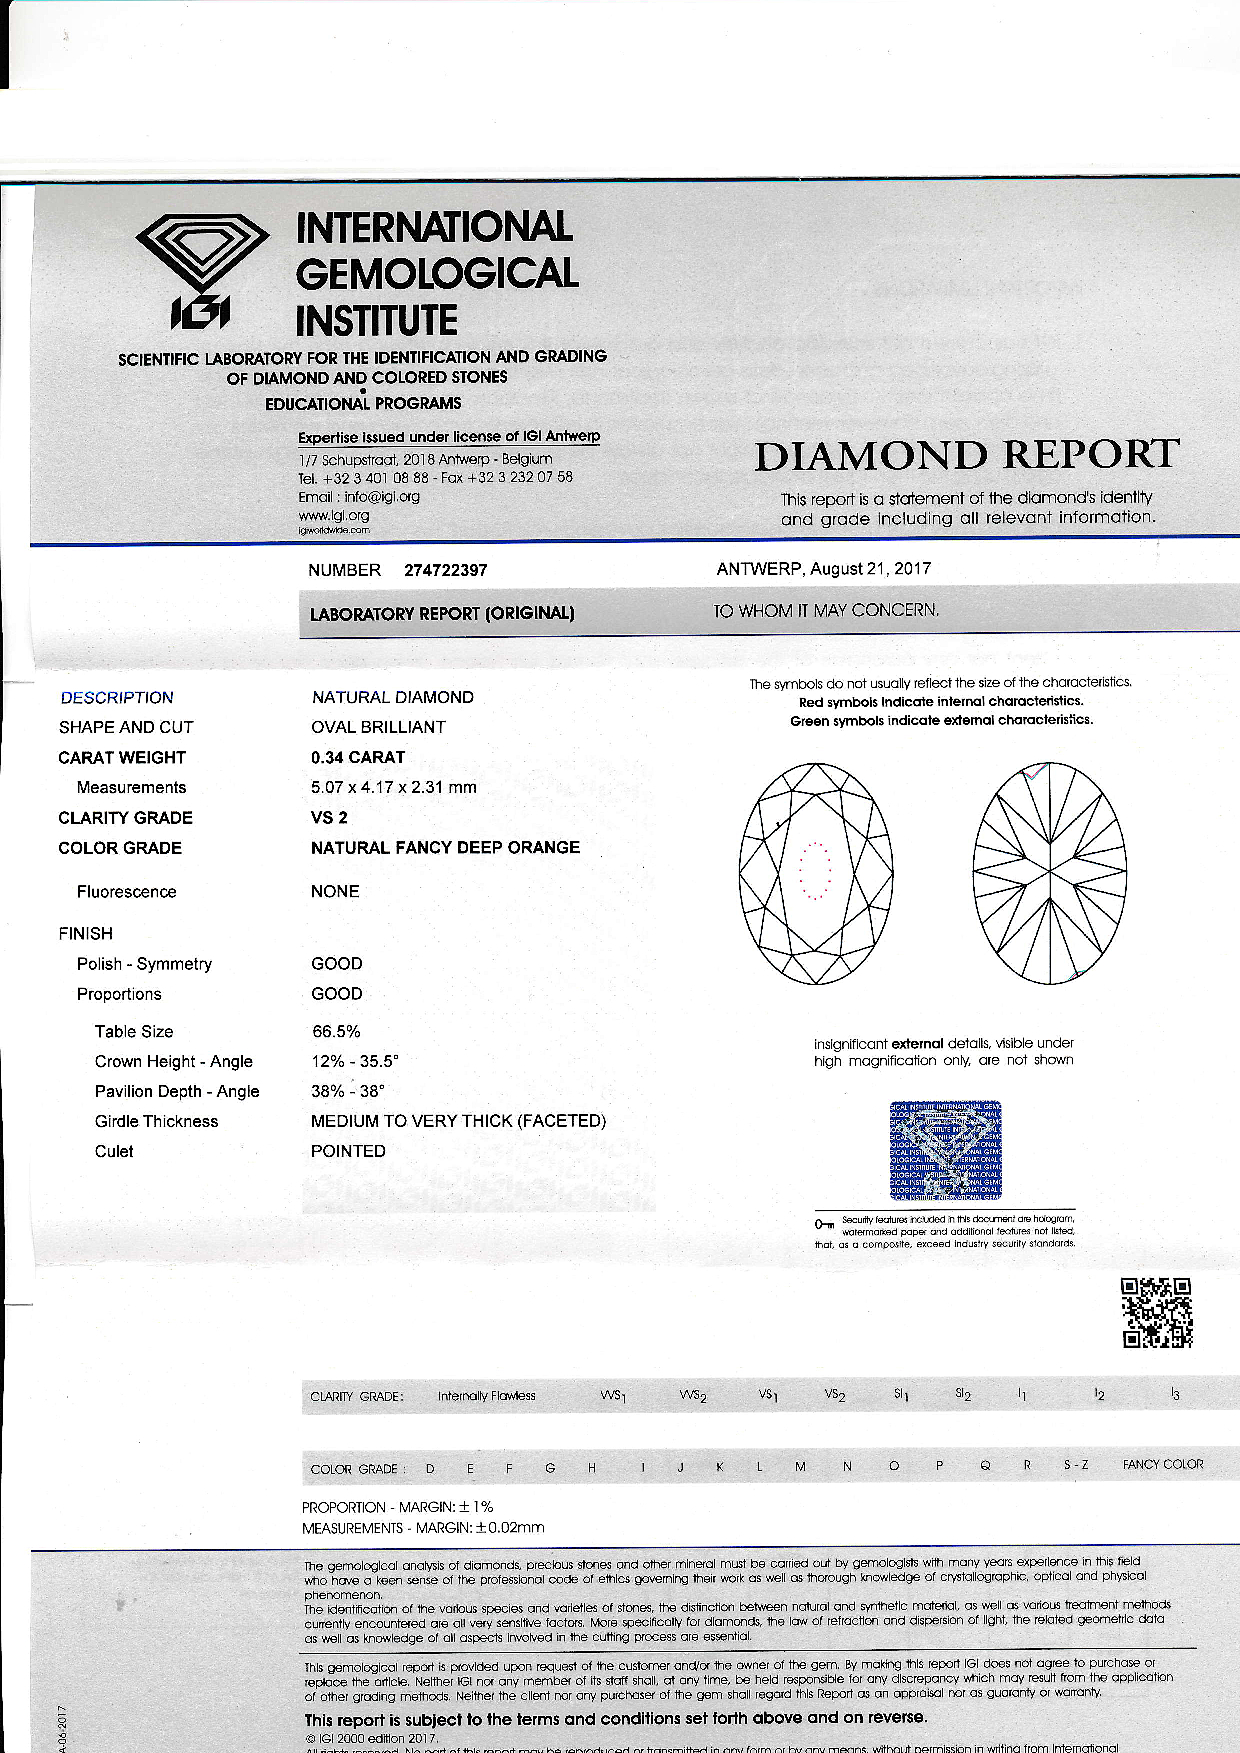 igi diamond reports htm diamondreport